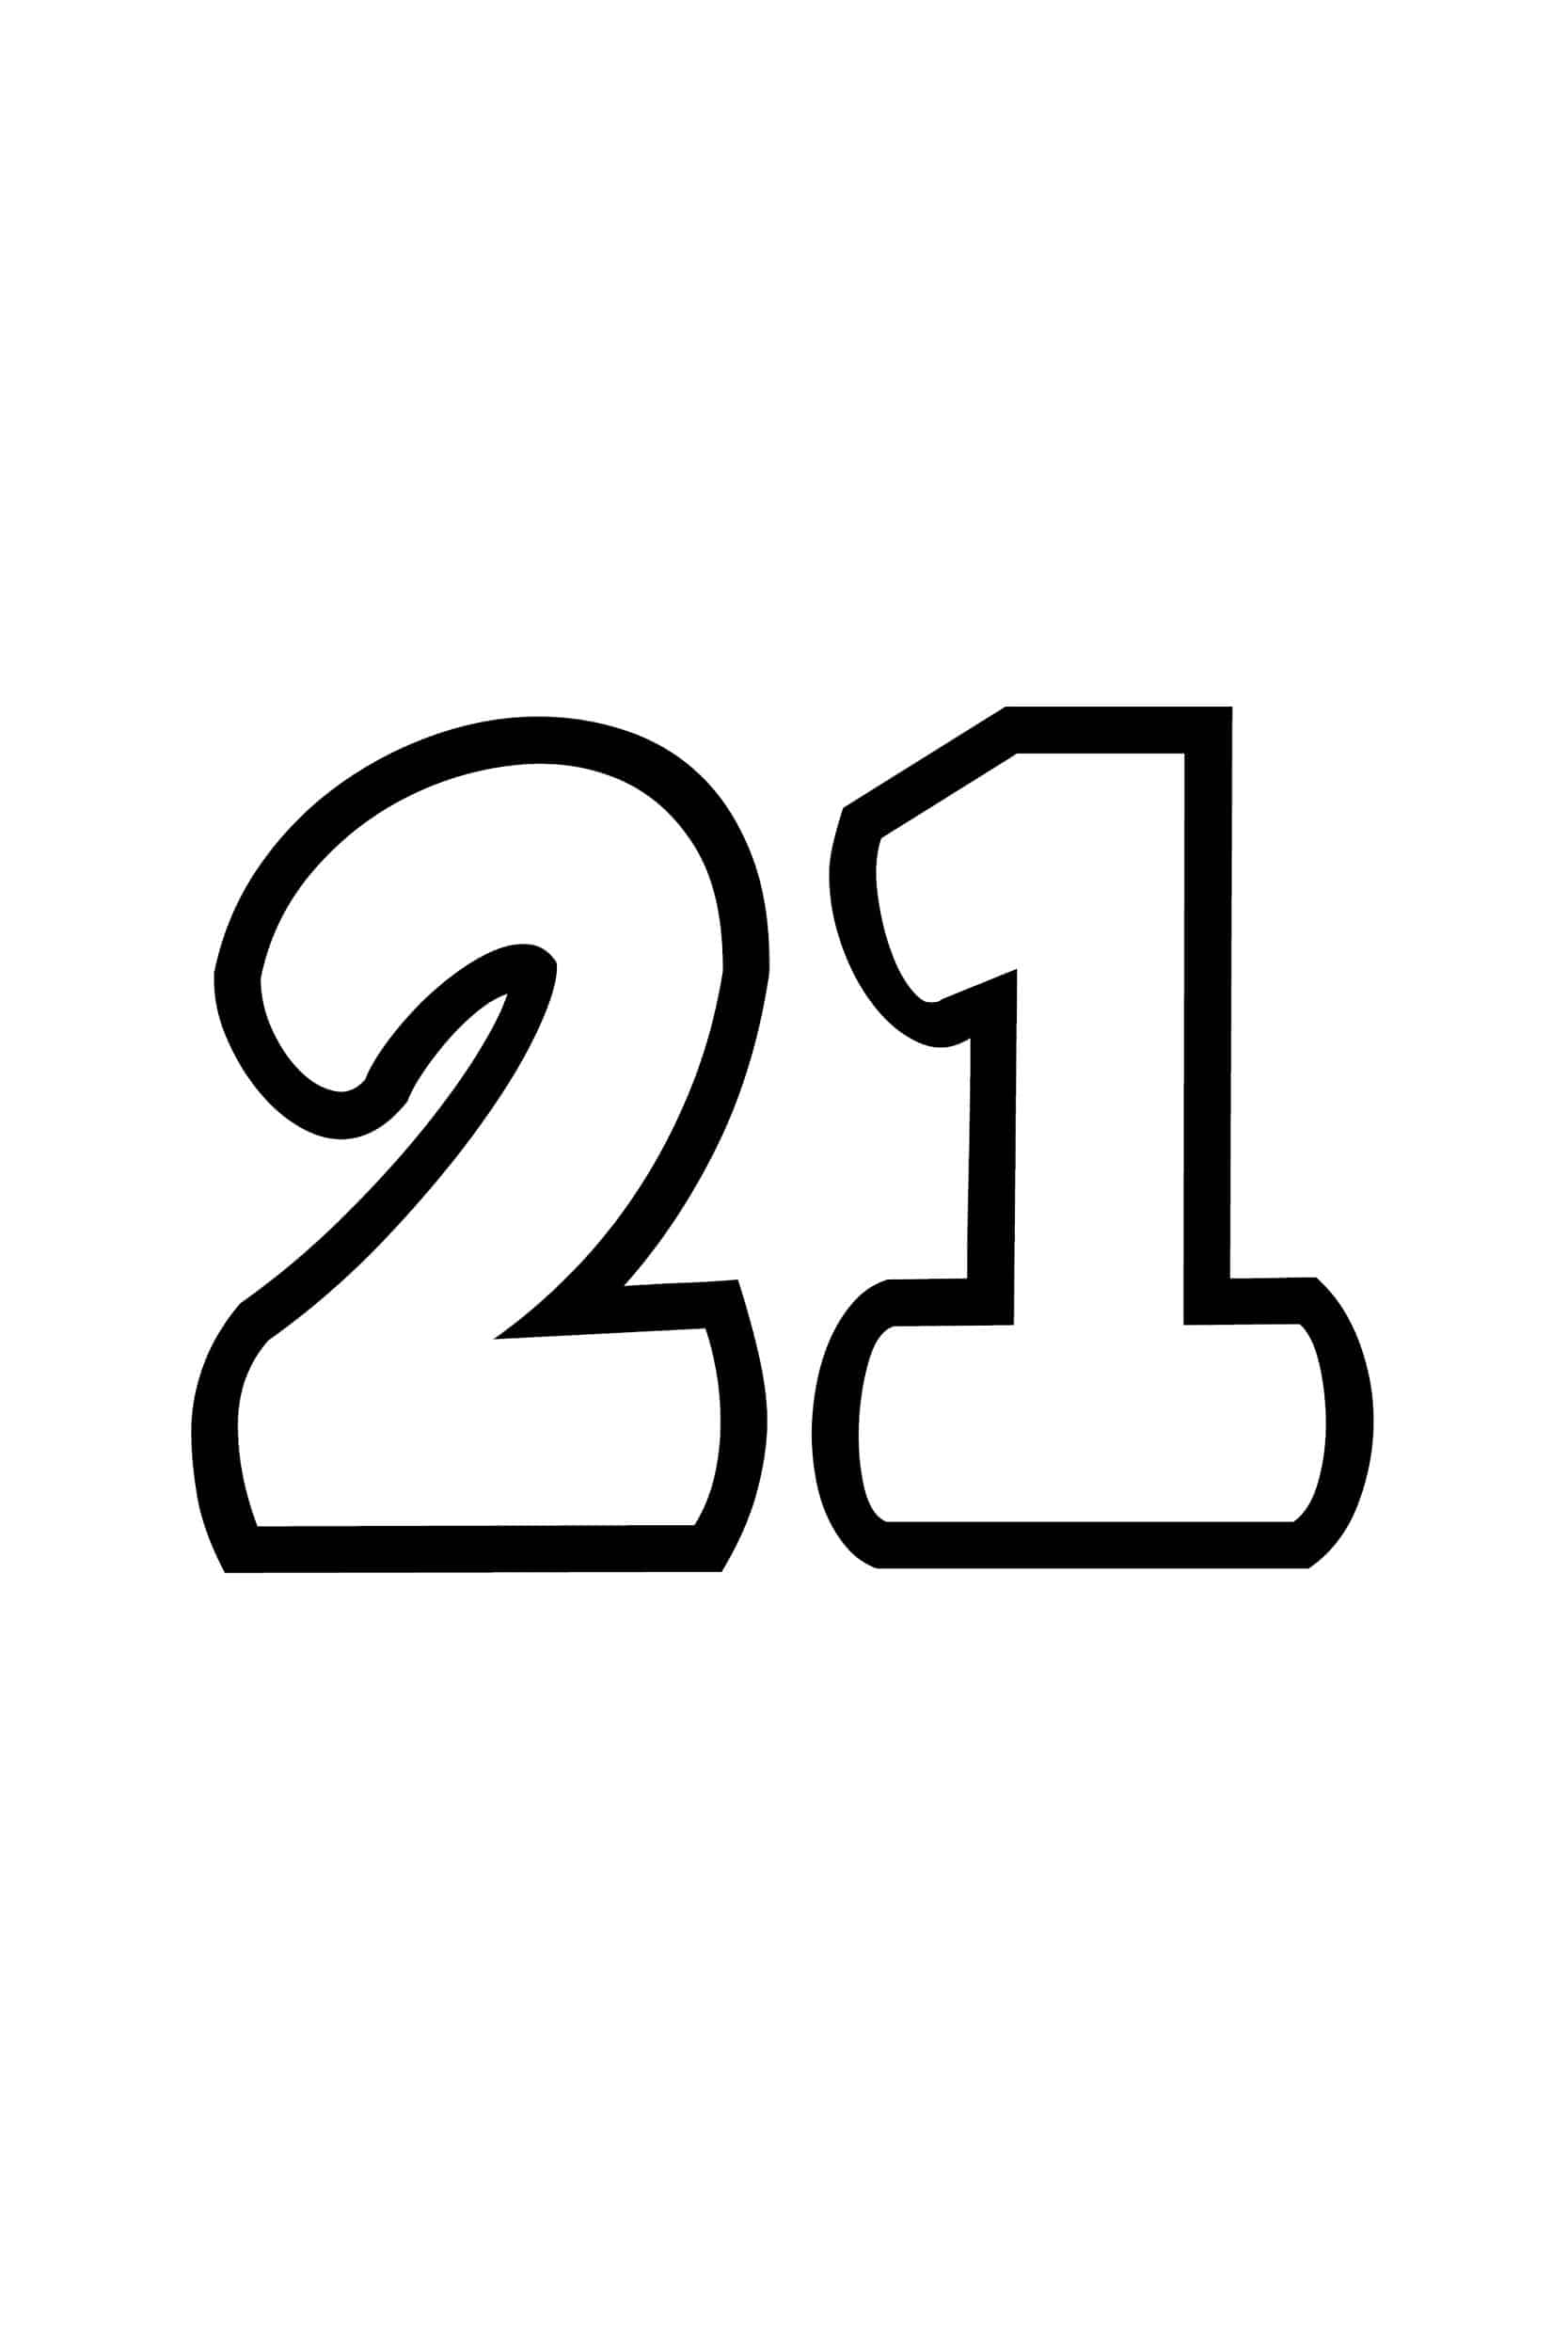 Free Printable Number Bubble Letters Bubble Number 21